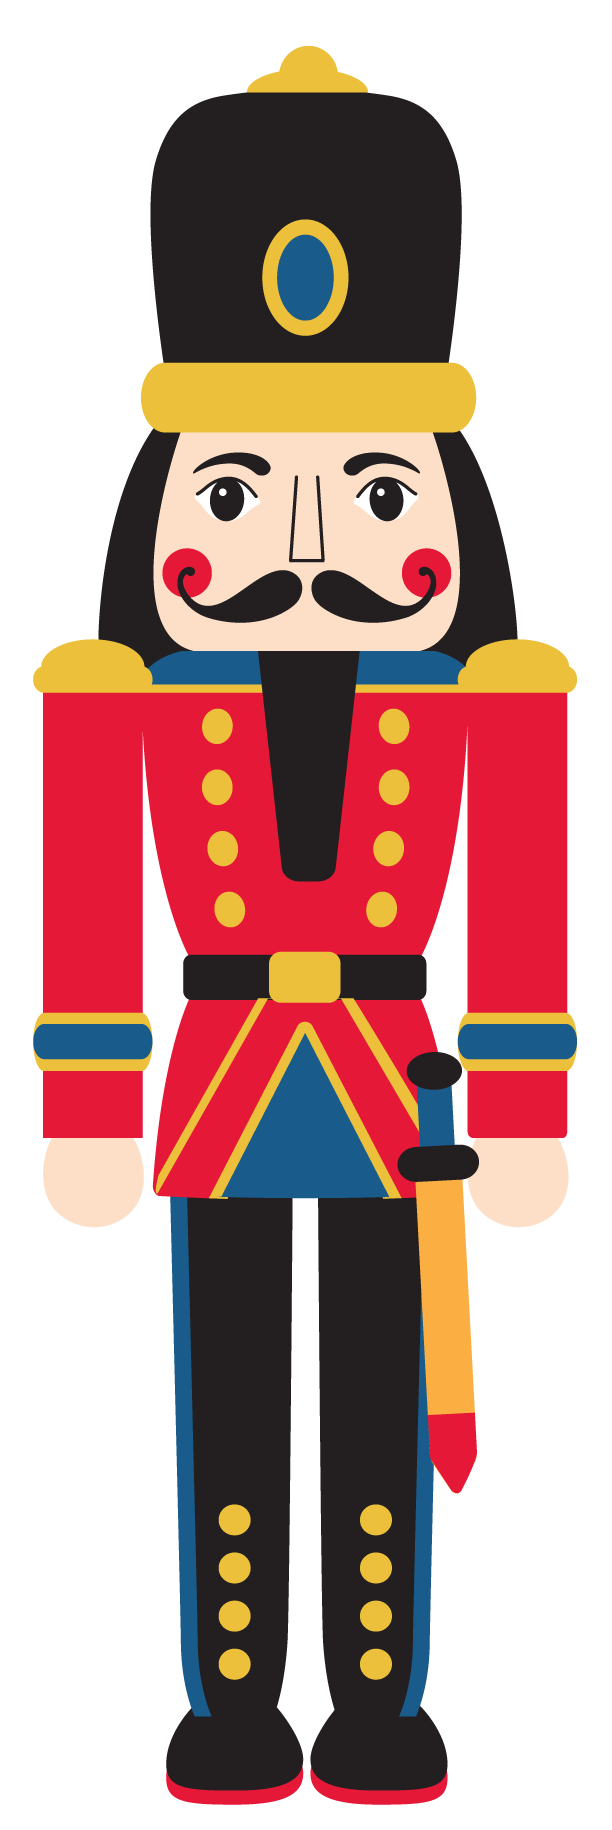 the nutcracker clipart at getdrawings com free for personal use rh getdrawings com nutcracker clip art free nutcracker clipart images